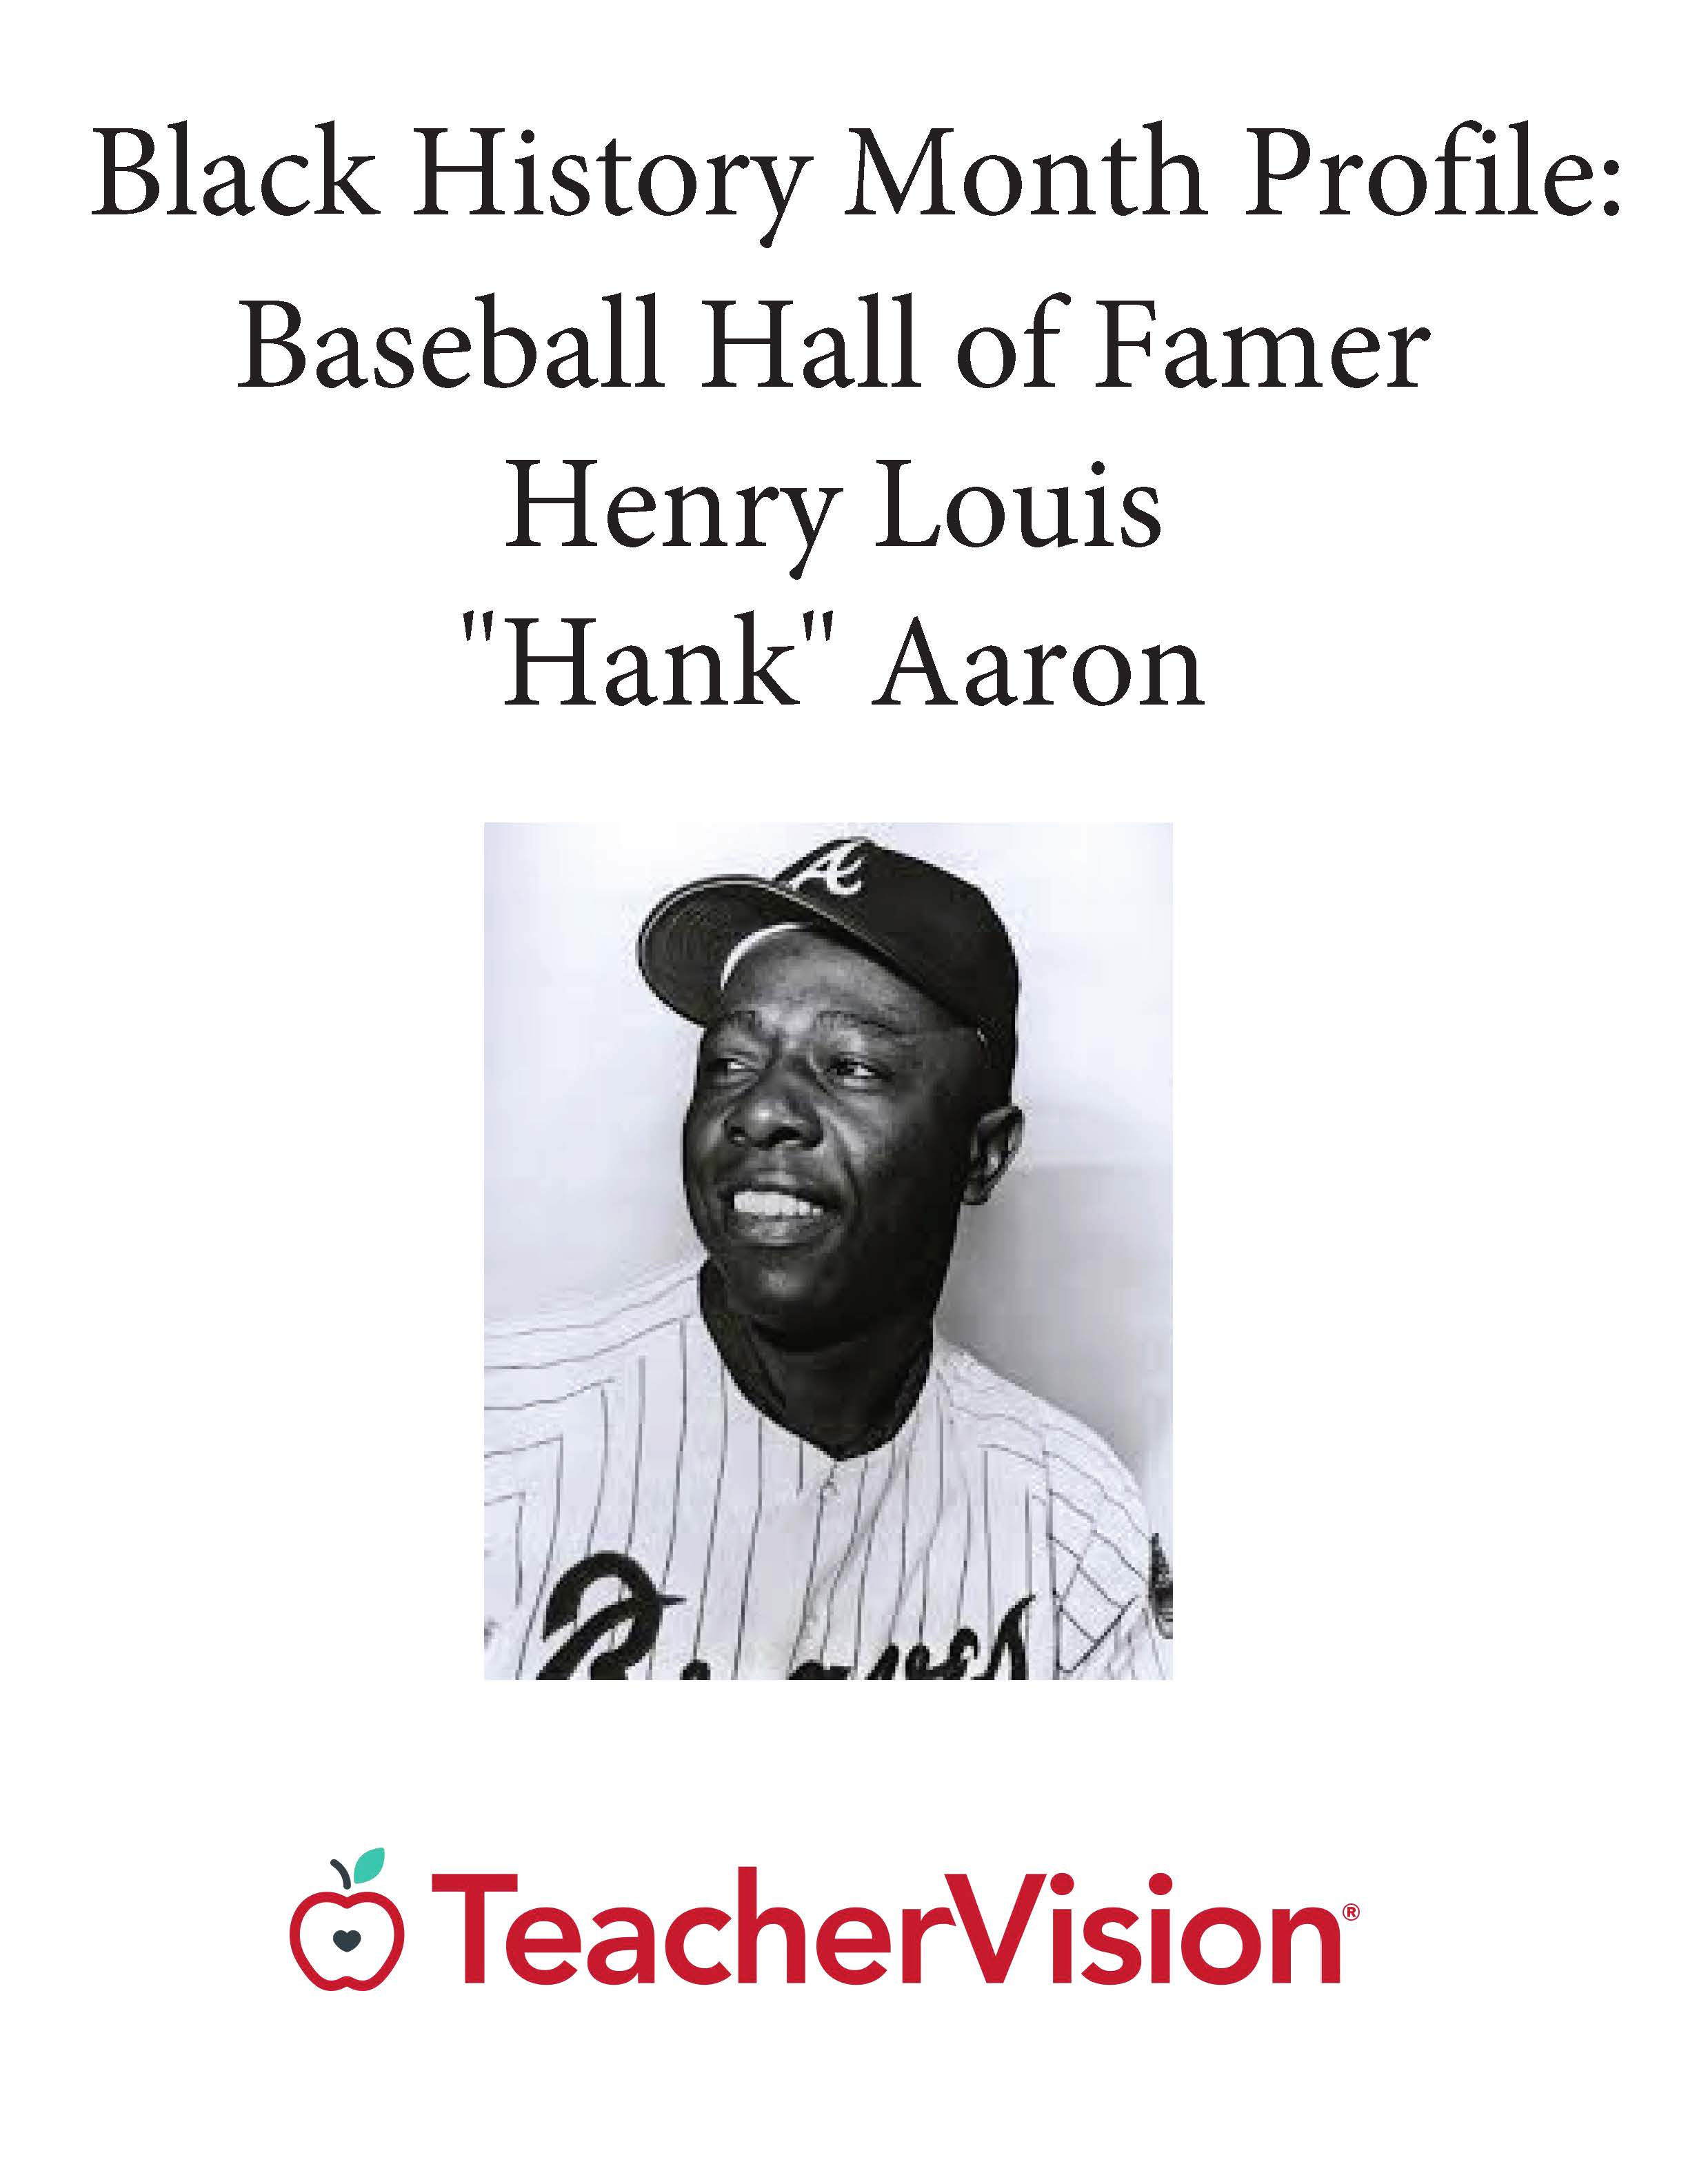 Black History Month Profile: Baseball Hall of Famer Hank Aaron